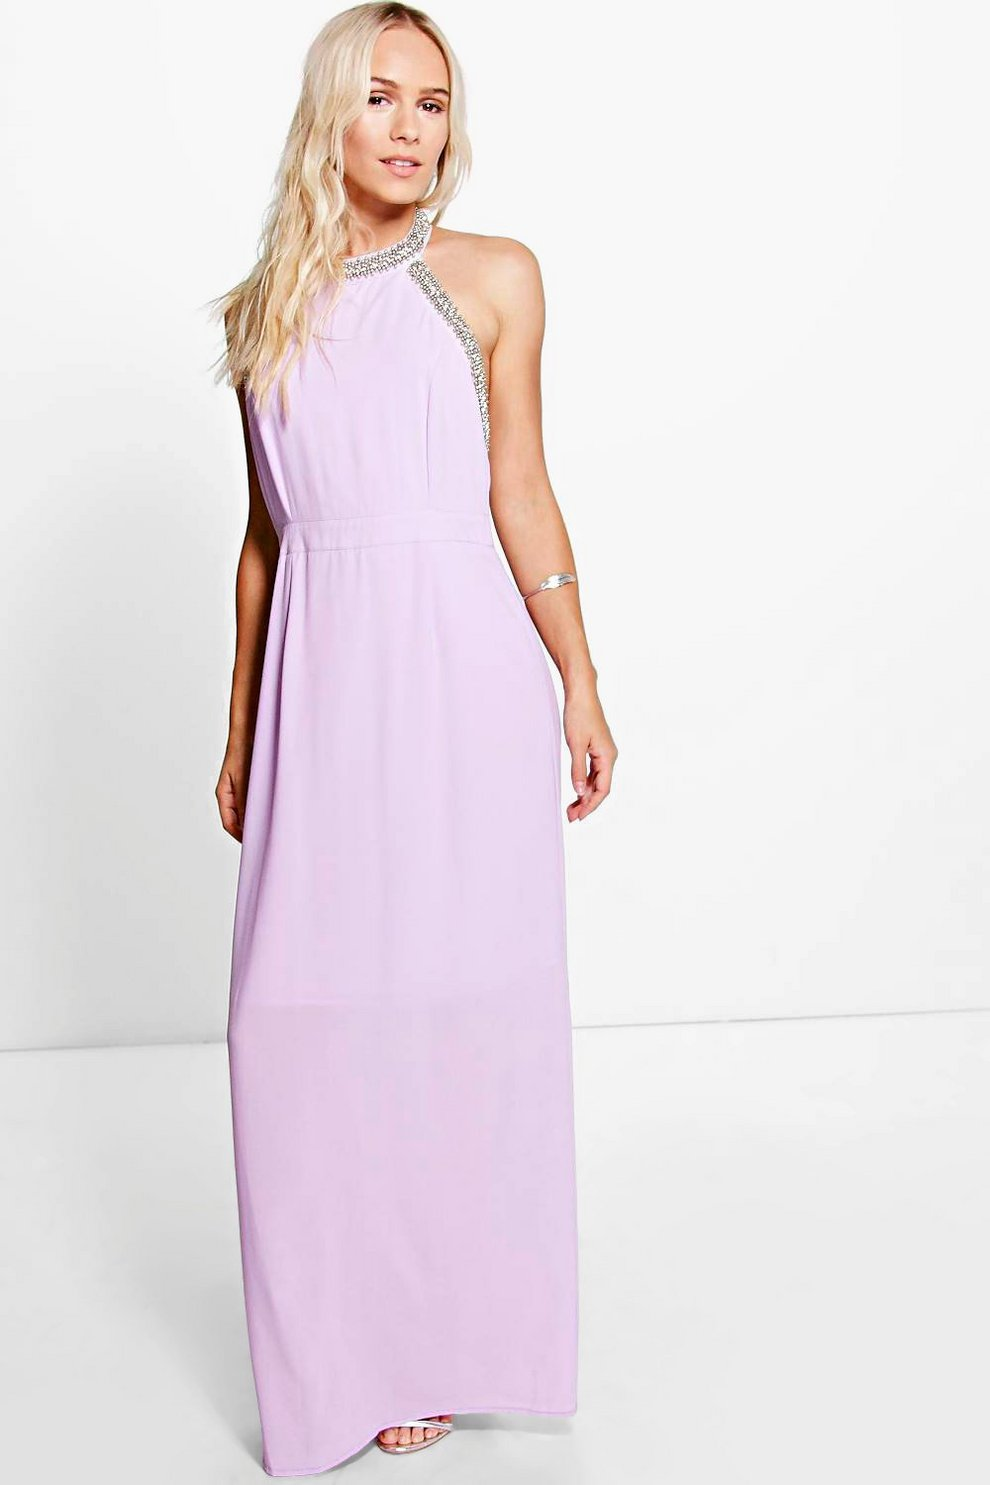 7c00ccfd3ab2 Petite Jenna Embellished Halter Maxi Dress. Womens Lilac Petite Jenna  Embellished Halter Maxi Dress. Hover to zoom